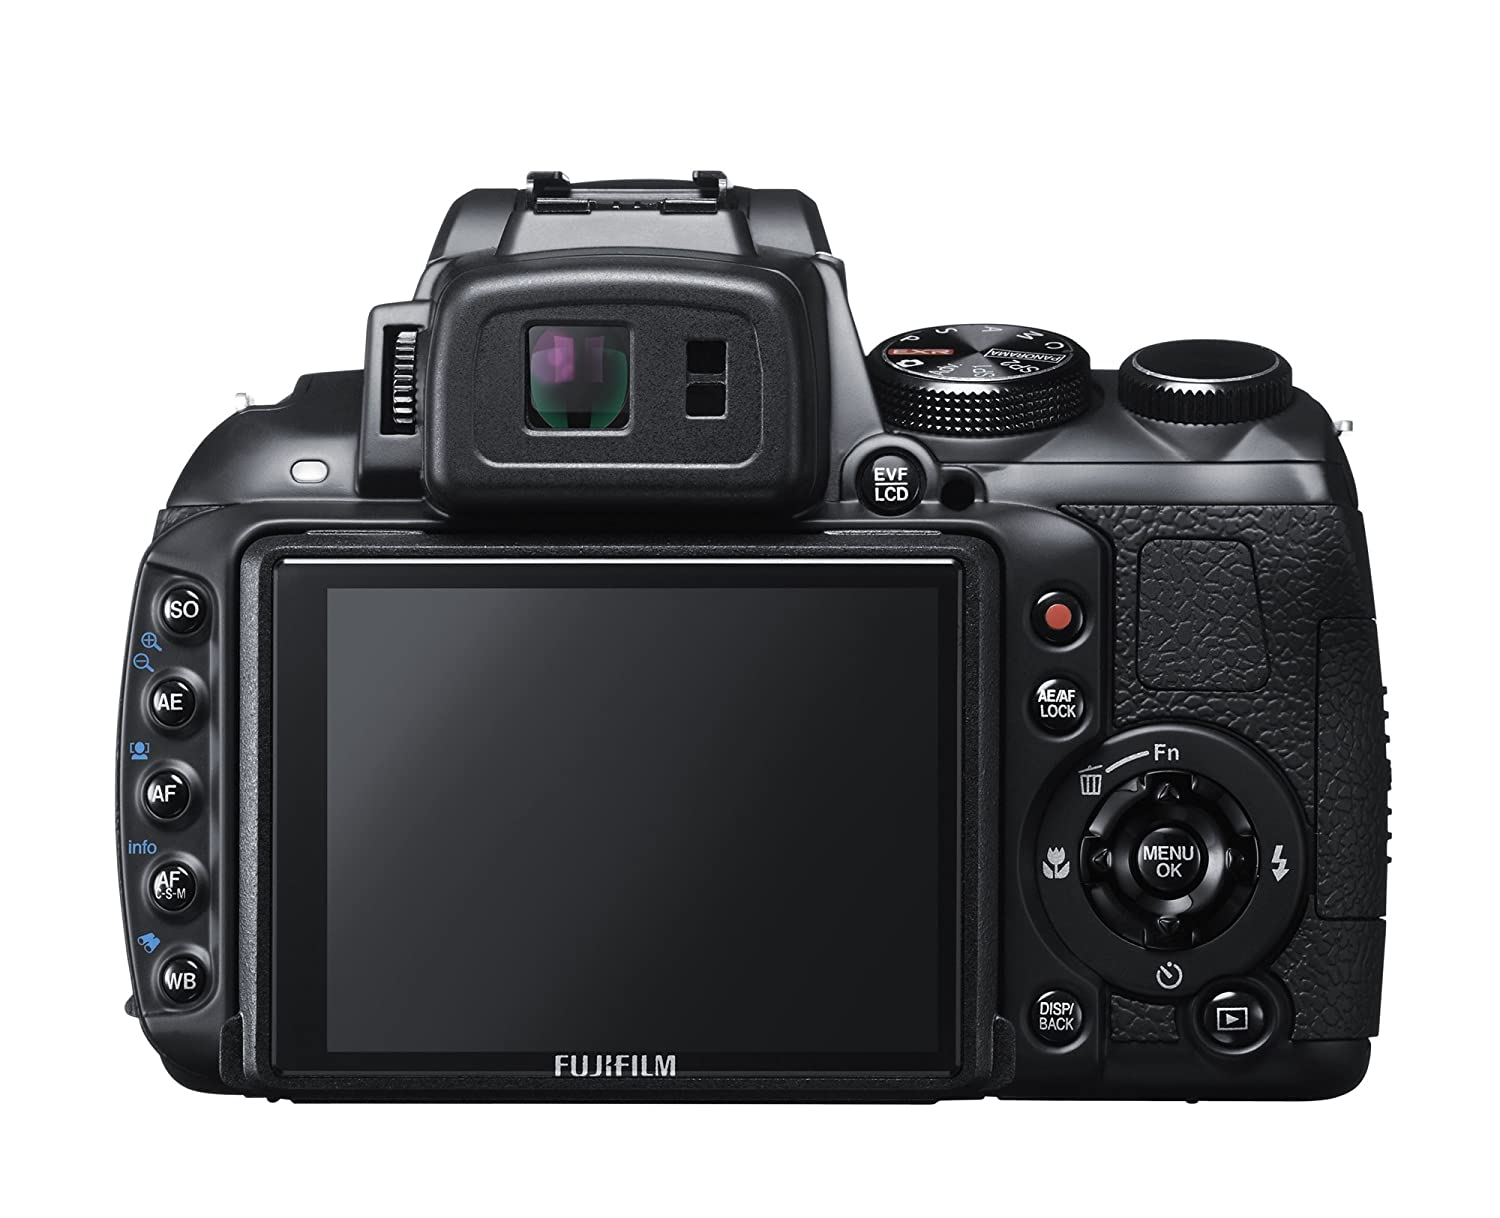 Buy Fujifilm FinePix HS30EXR 16MP Point and Shoot Digital Camera (Black)  with 30x Manual Optical Zoom Online at Low Price in India   Fuji Camera  Reviews ...